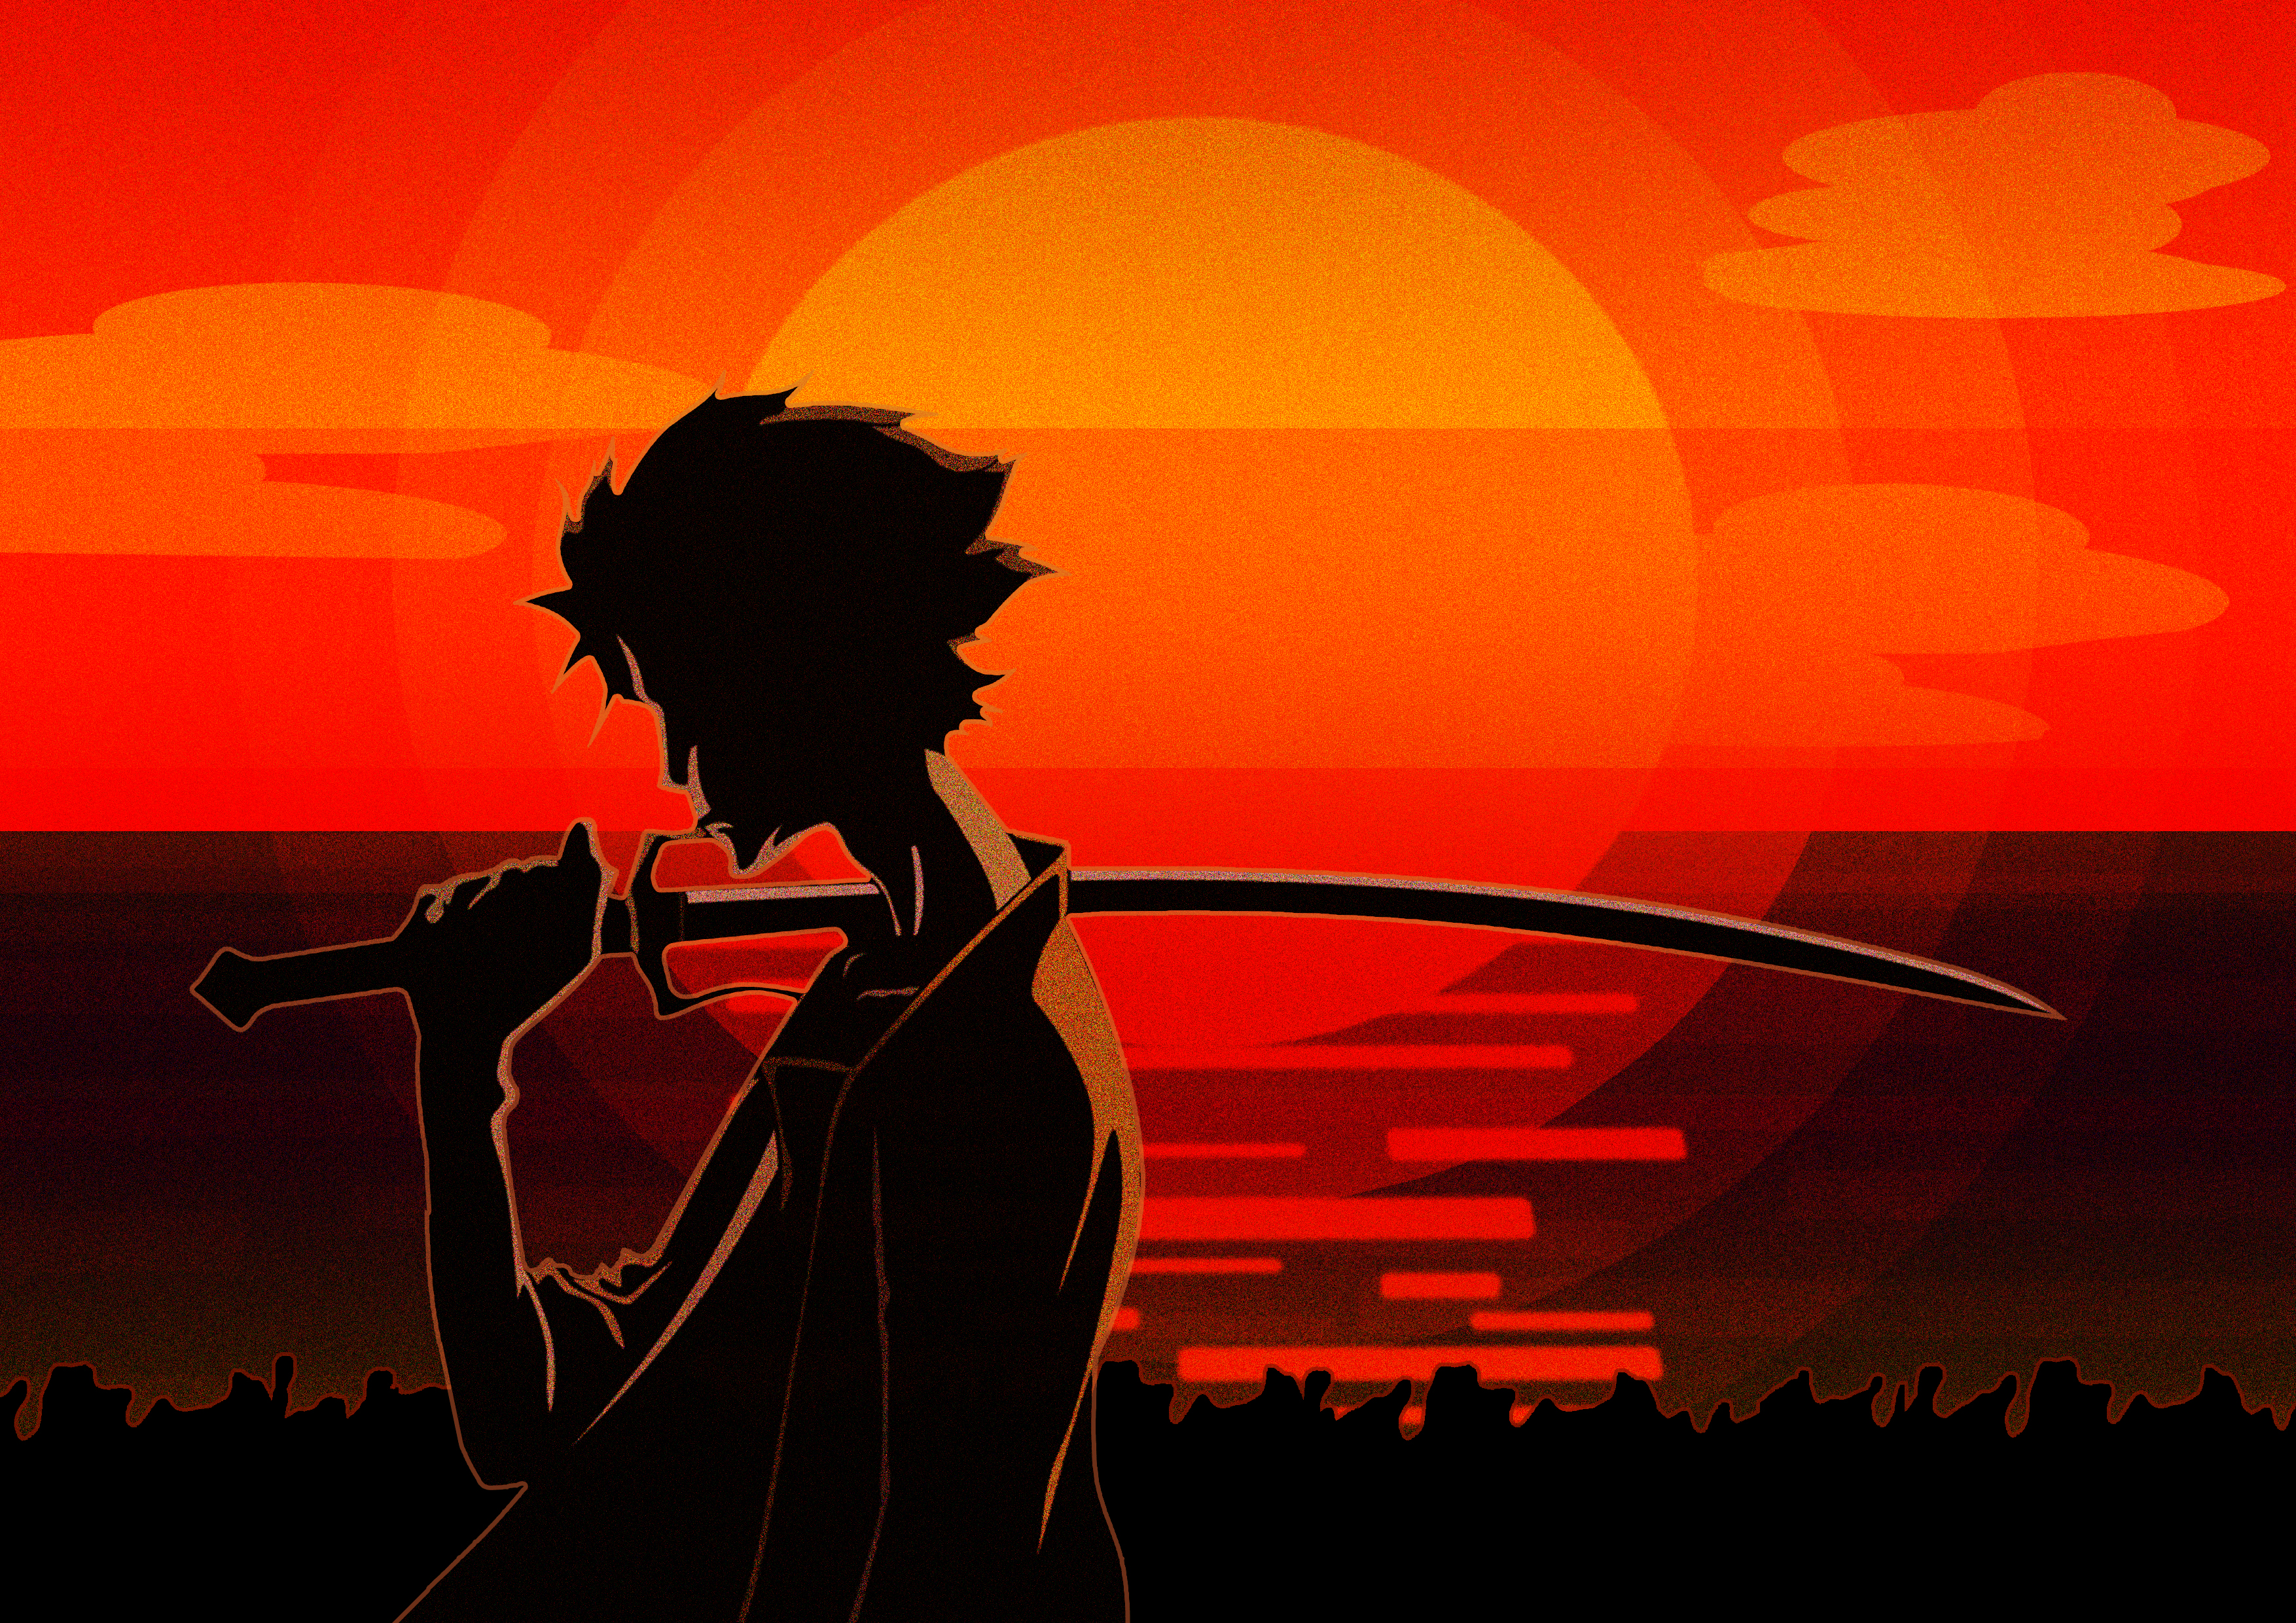 mugen_s_sunset__samurai_champloo__by_hat